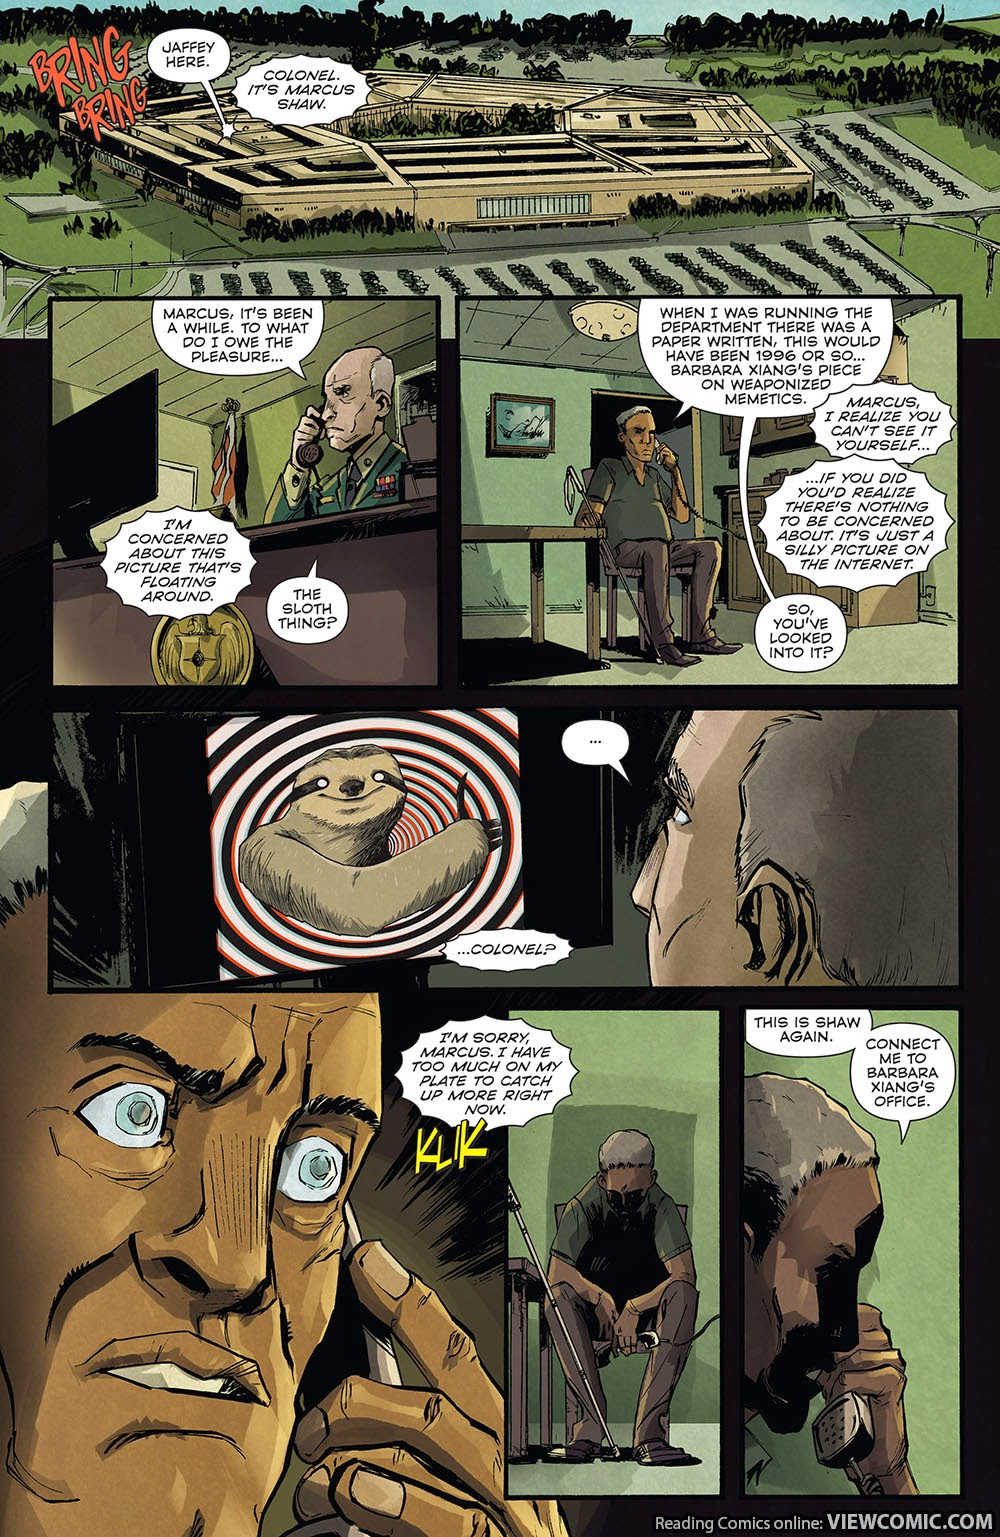 Memetic 01 (of 03) (2014) ……………………… | Viewcomic reading